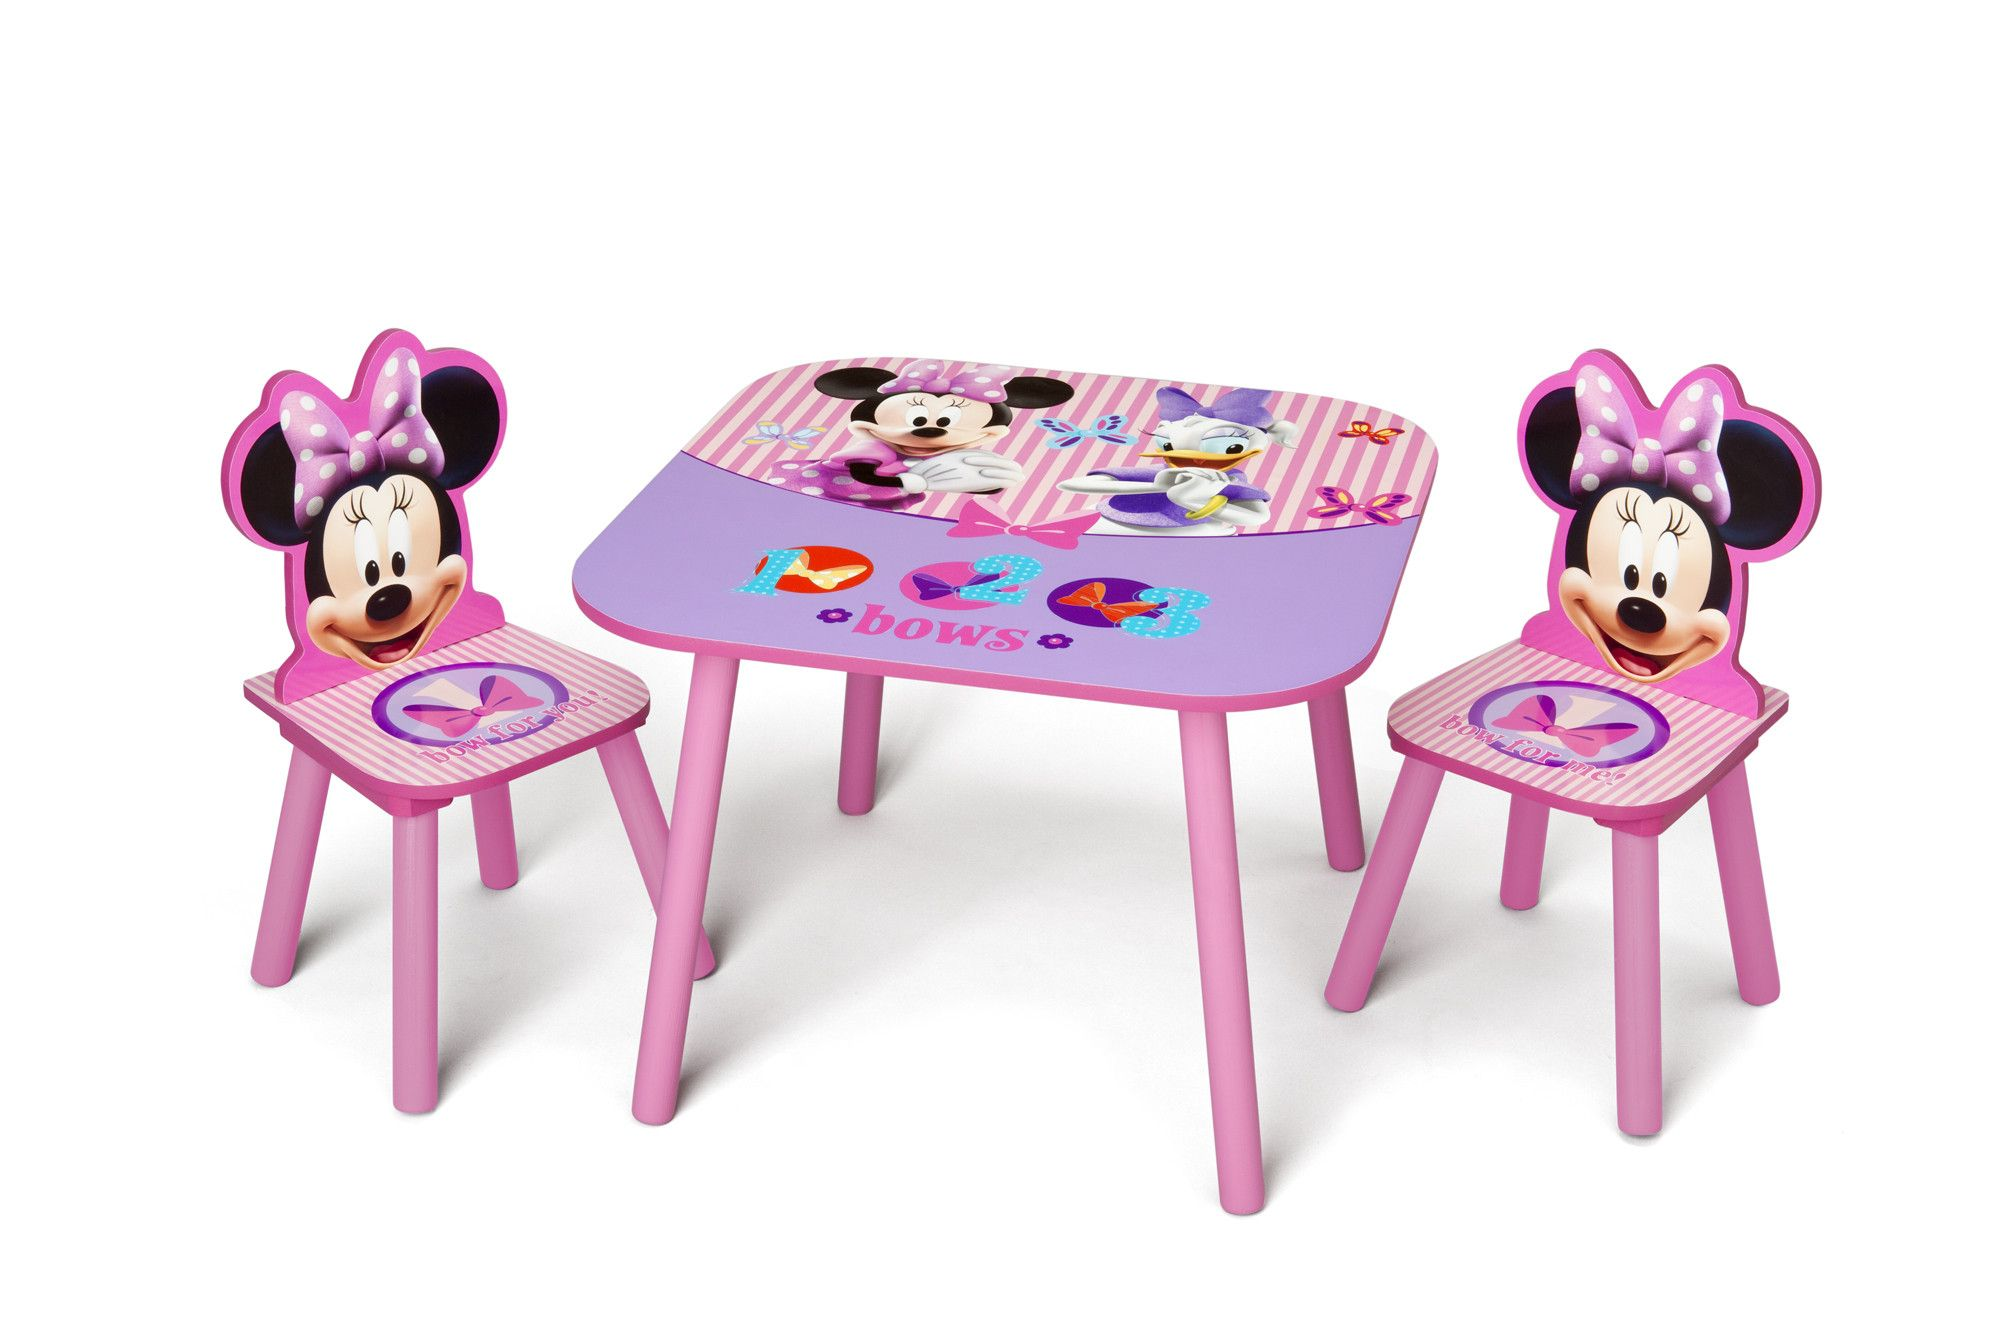 Minnie Mouse Kids 3 Piece Table And Chair Set Minnie Mouse Bedroom Kids Table And Chairs Disney Furniture